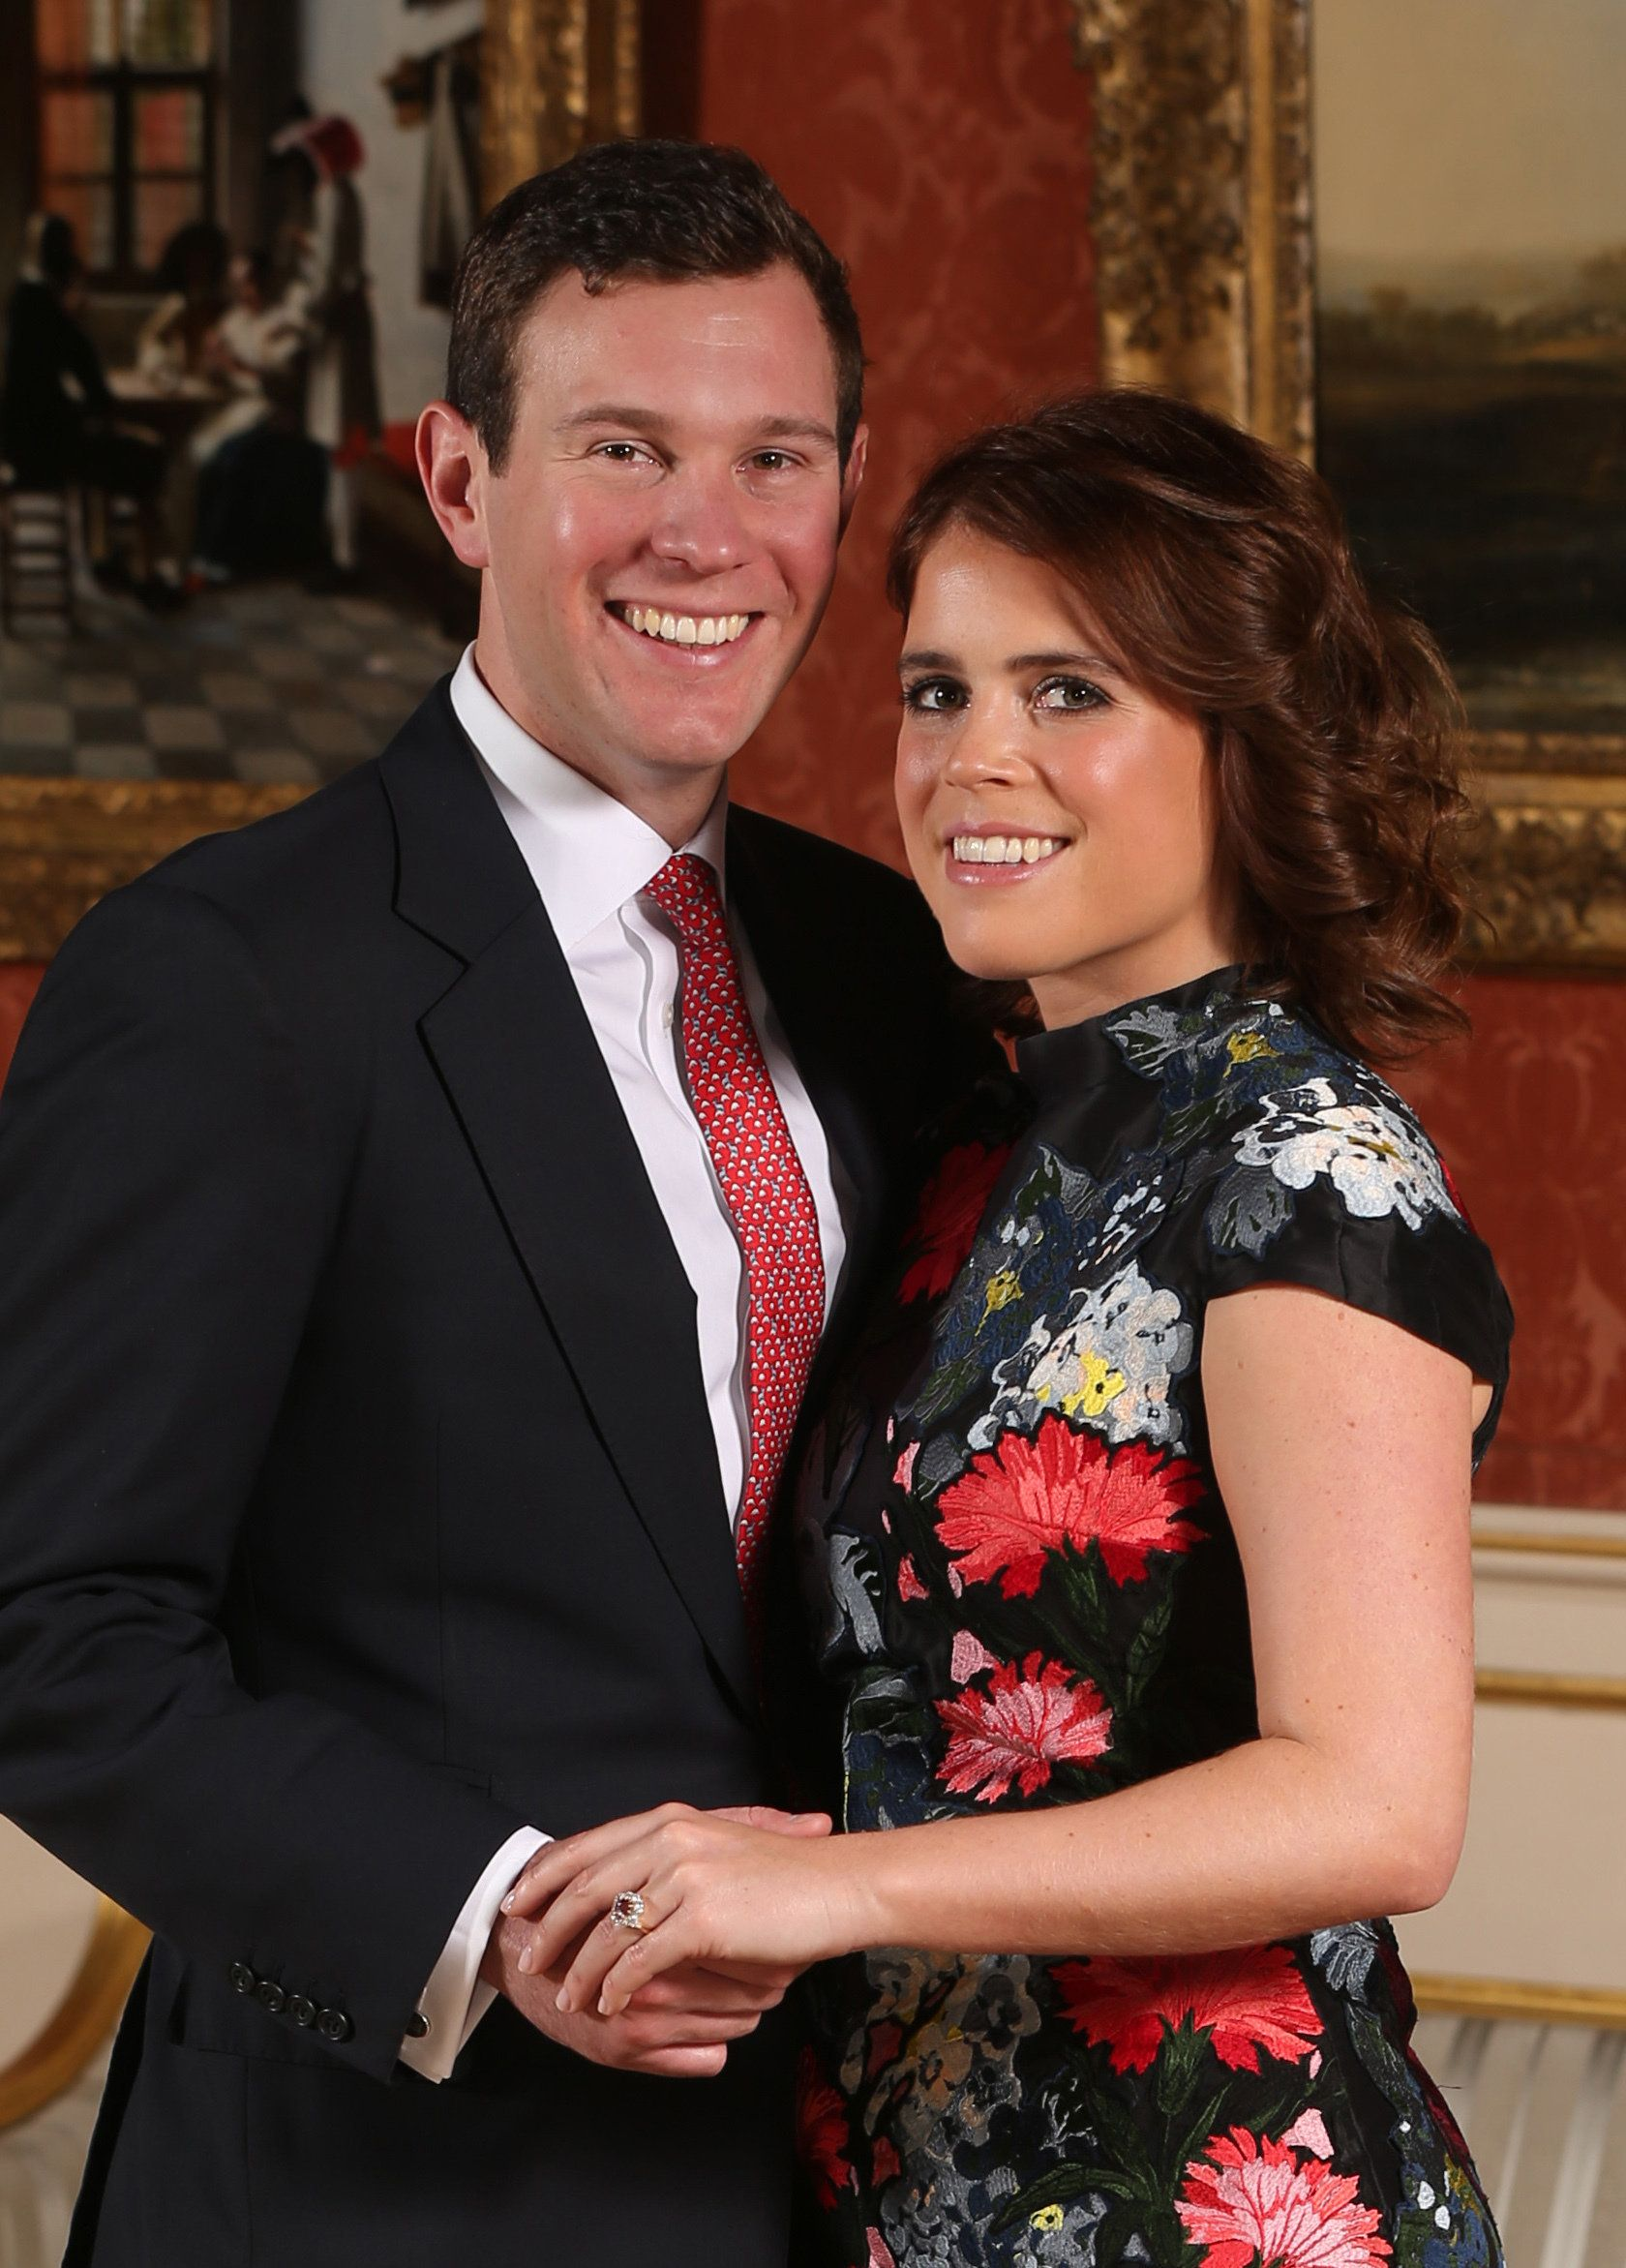 Princess Eugenie and Jack Brooksbank pose at Buckingham Palace in London after they announced their engagement.